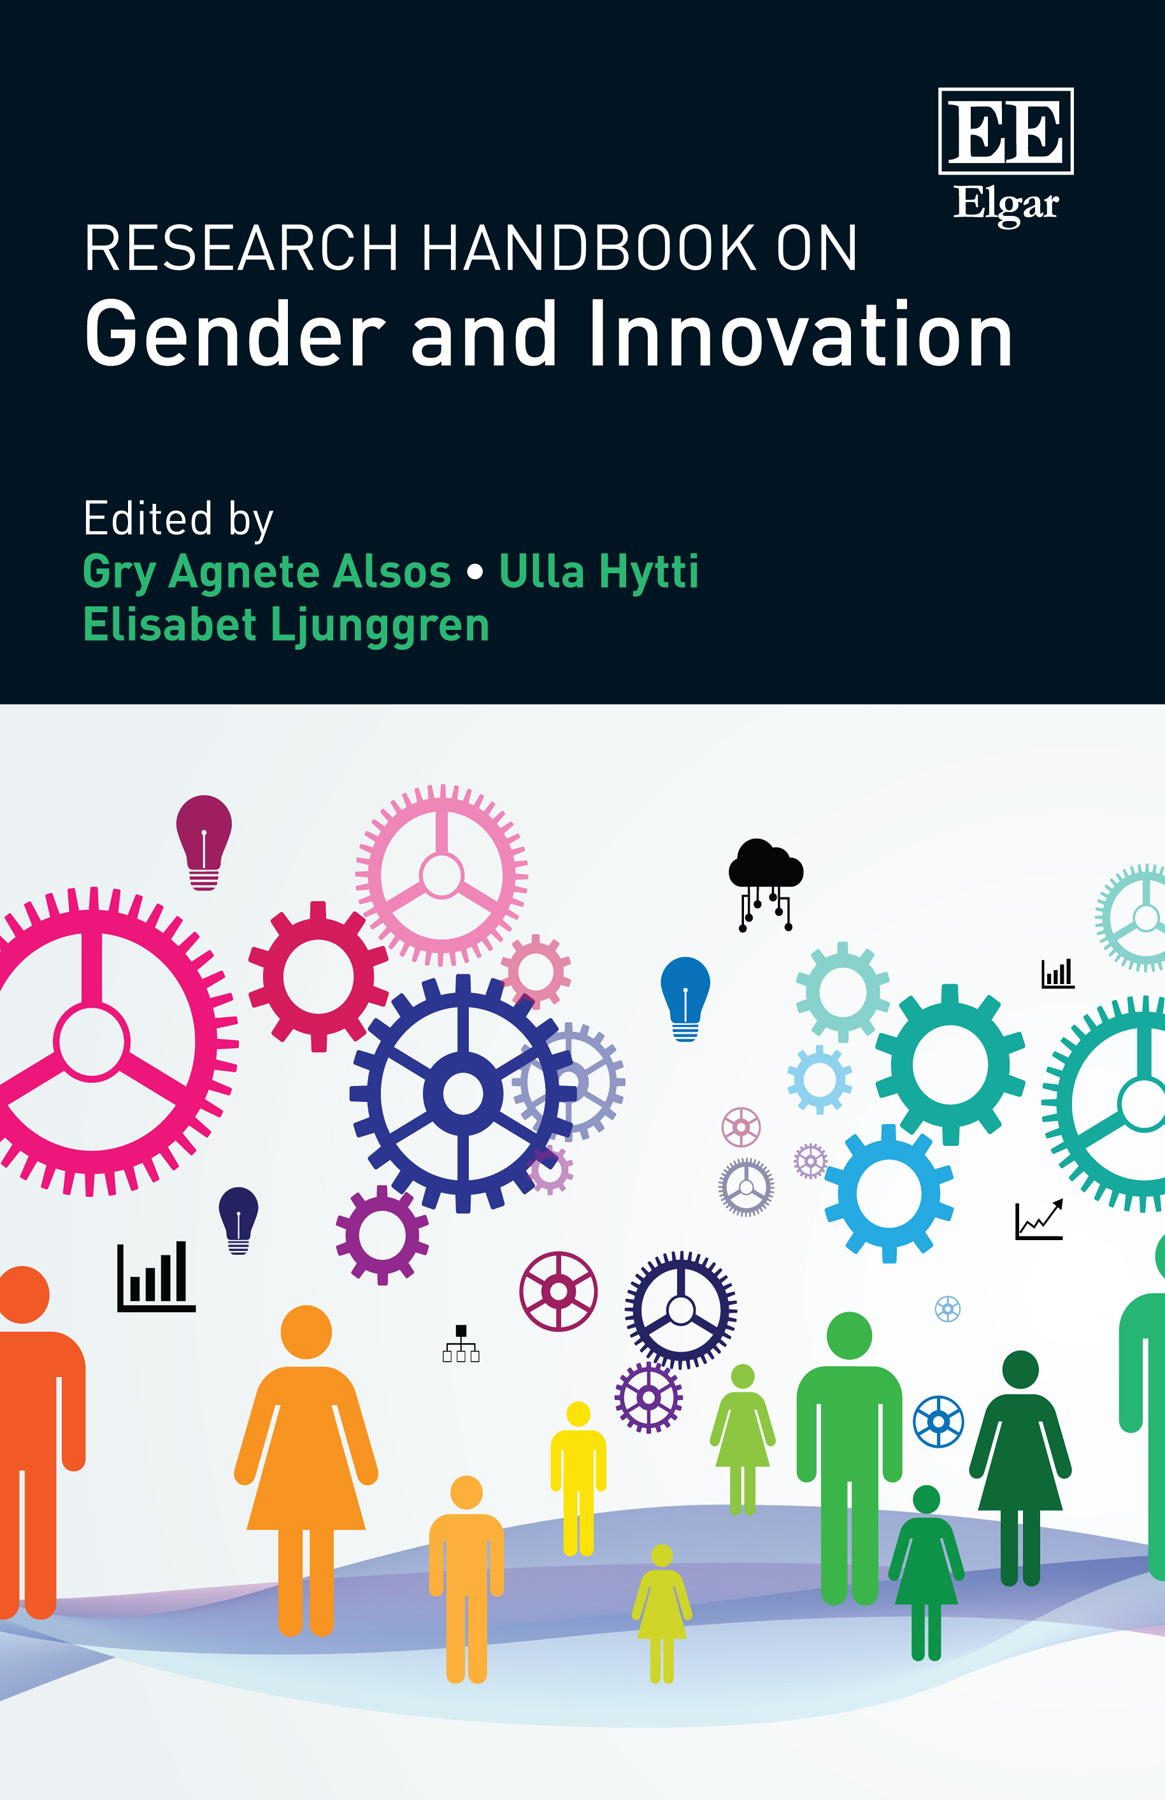 Download Ebook Research Handbook on Gender and Innovation by Gry A. Alsos Pdf